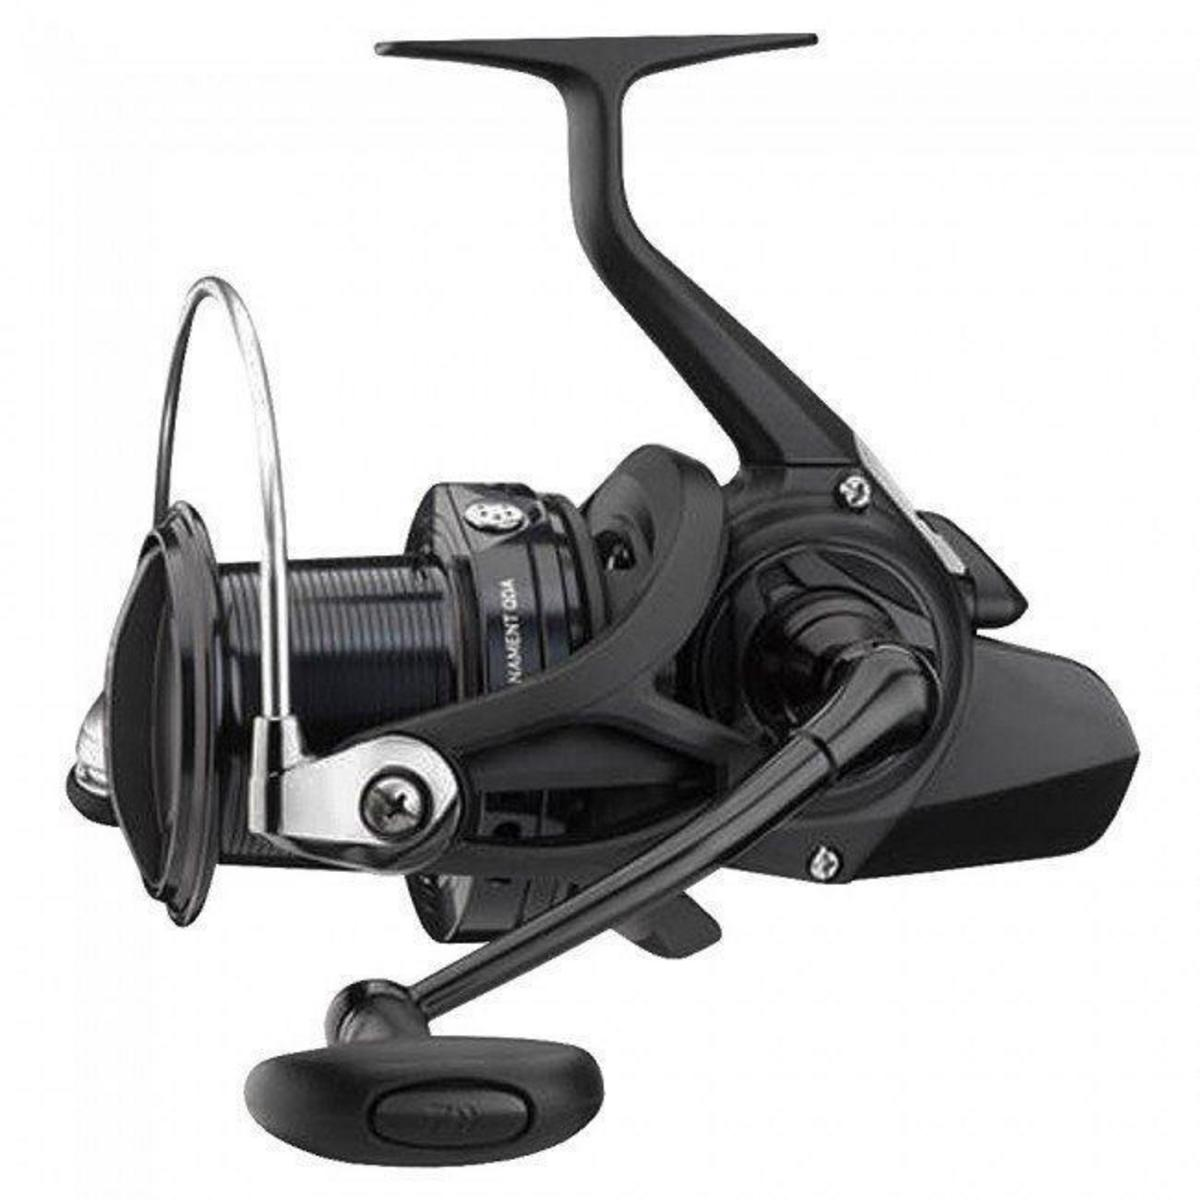 EX DISPLAY DAIWA TOURNAMENT 5000LD QDA SPINNING REEL CLEARANCE OFFER